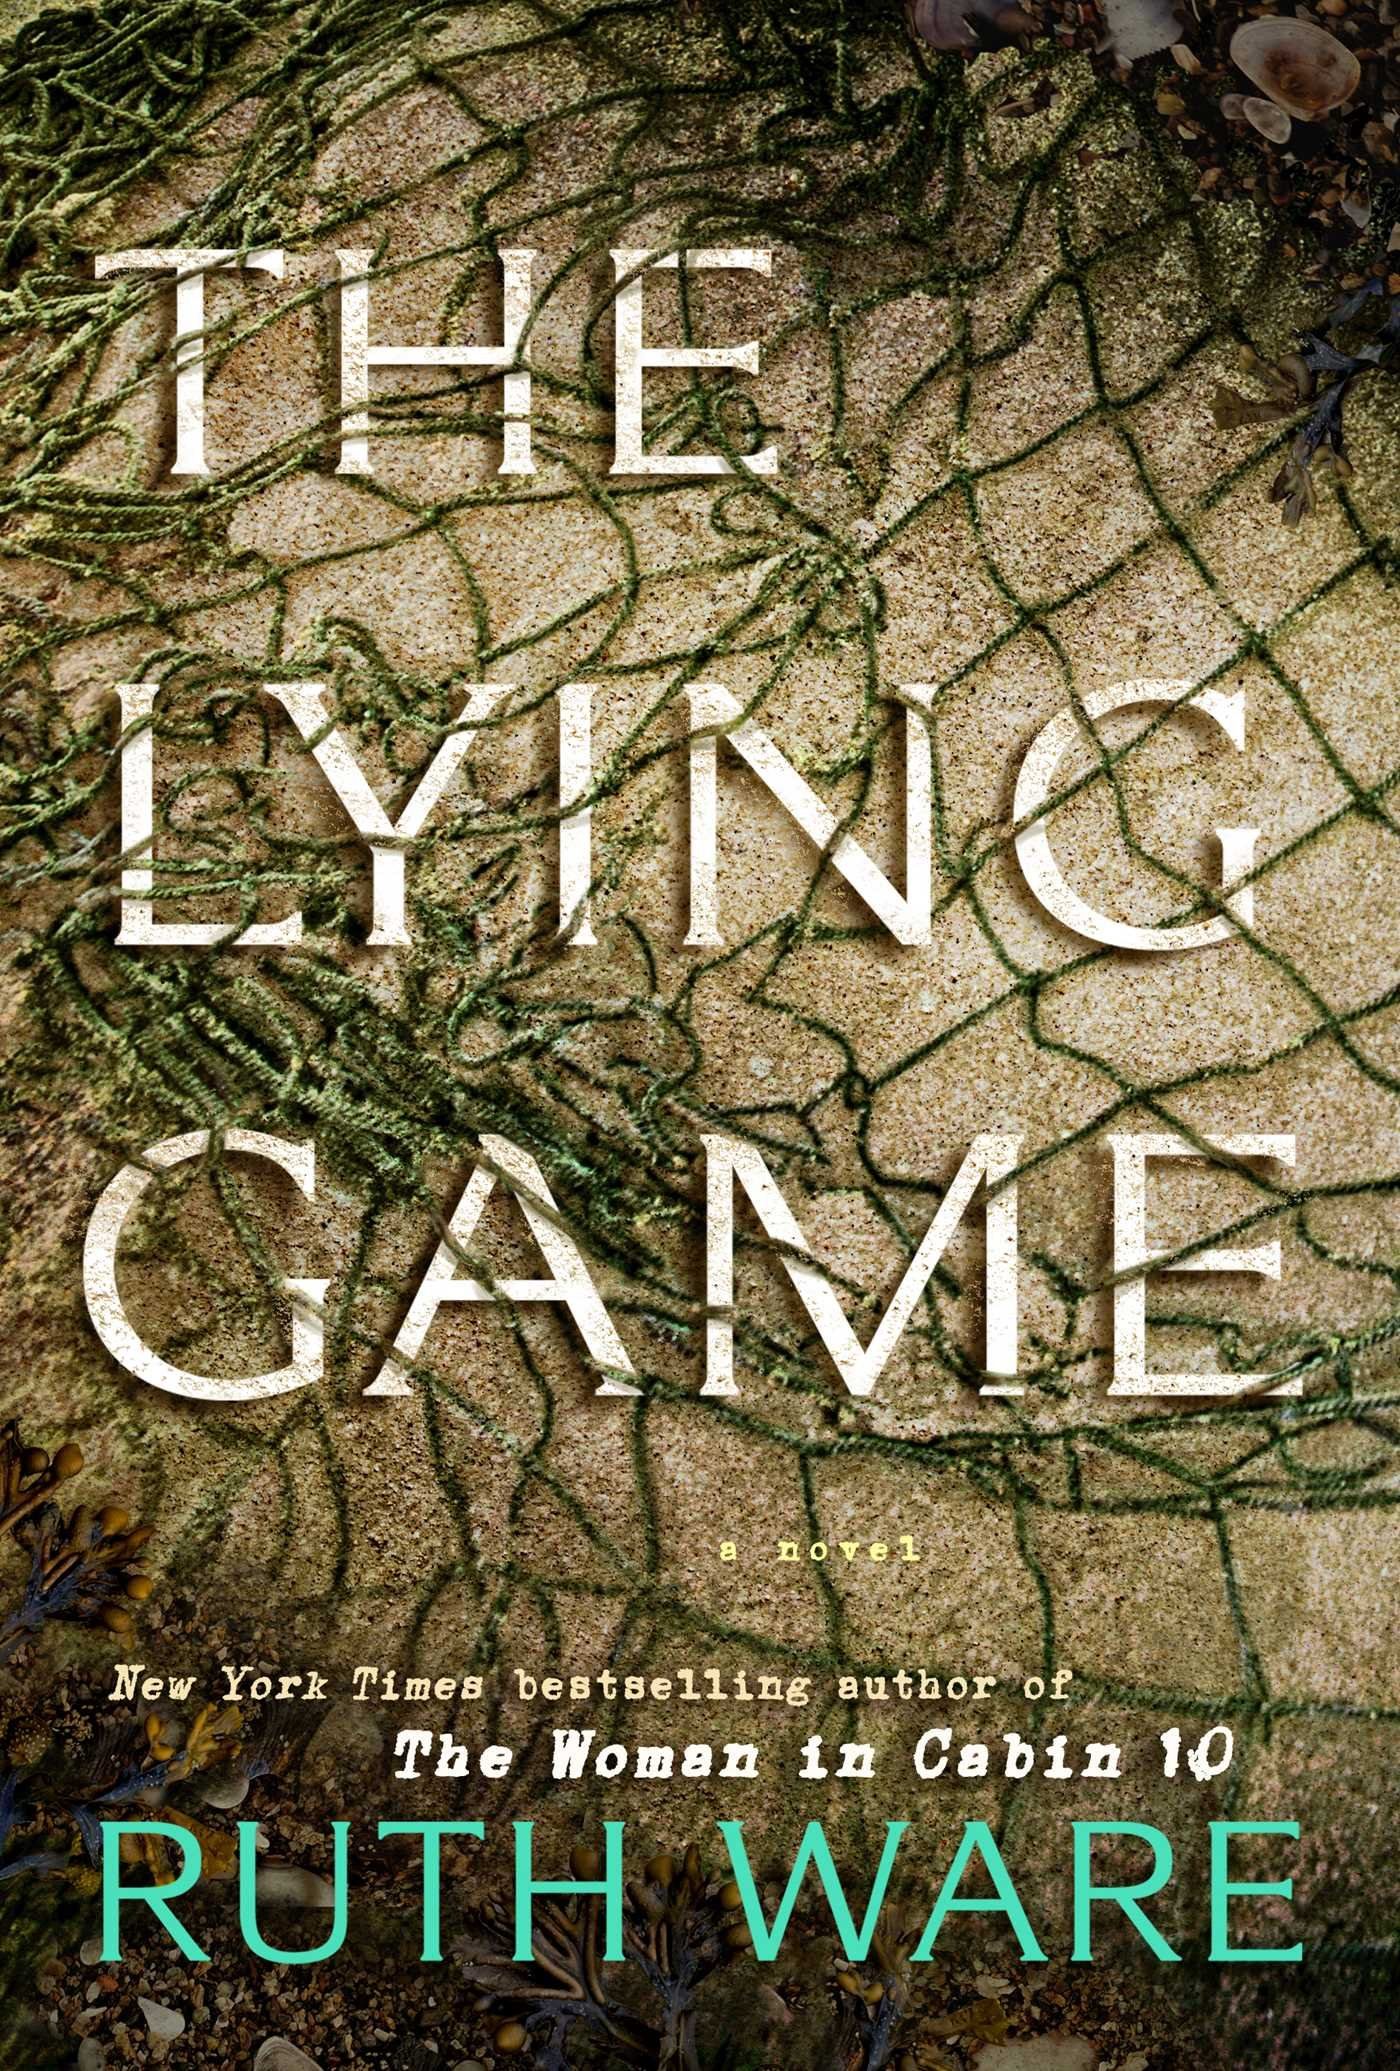 The Lying Game is a Must-Read This Summer